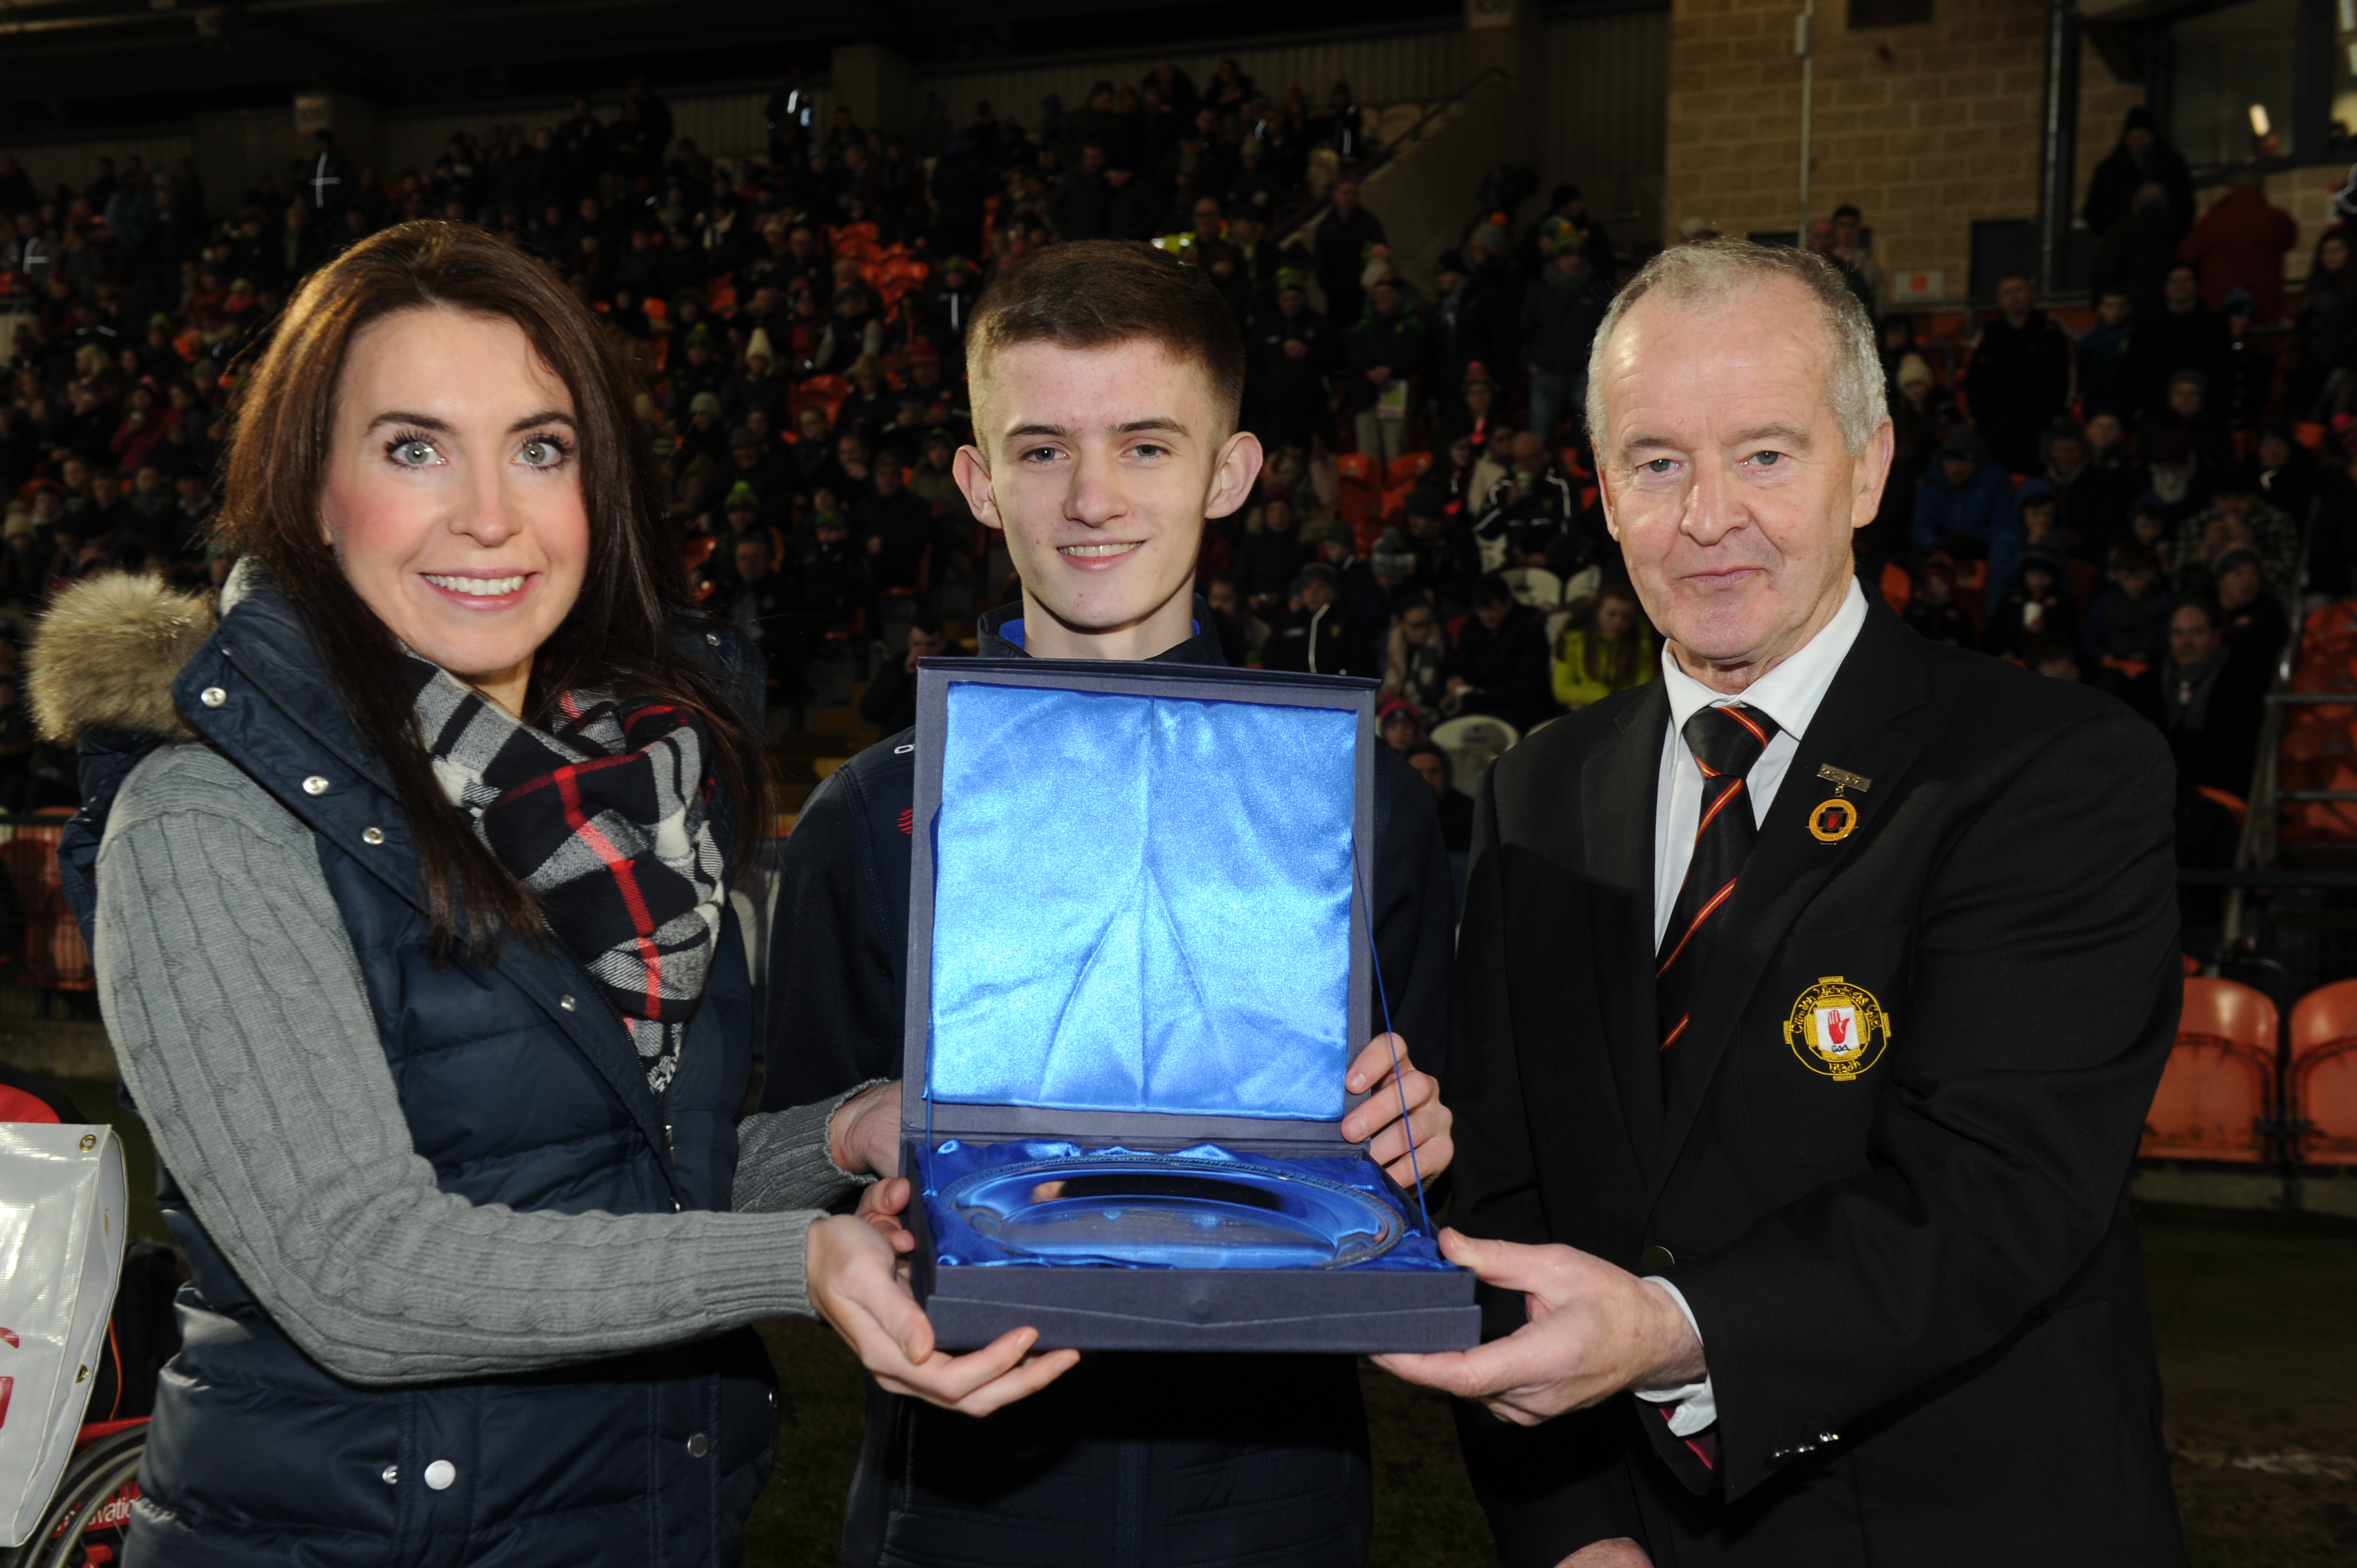 St. Galls GAA player wins Translink Ulster GAA Young Volunteer of the Year Award